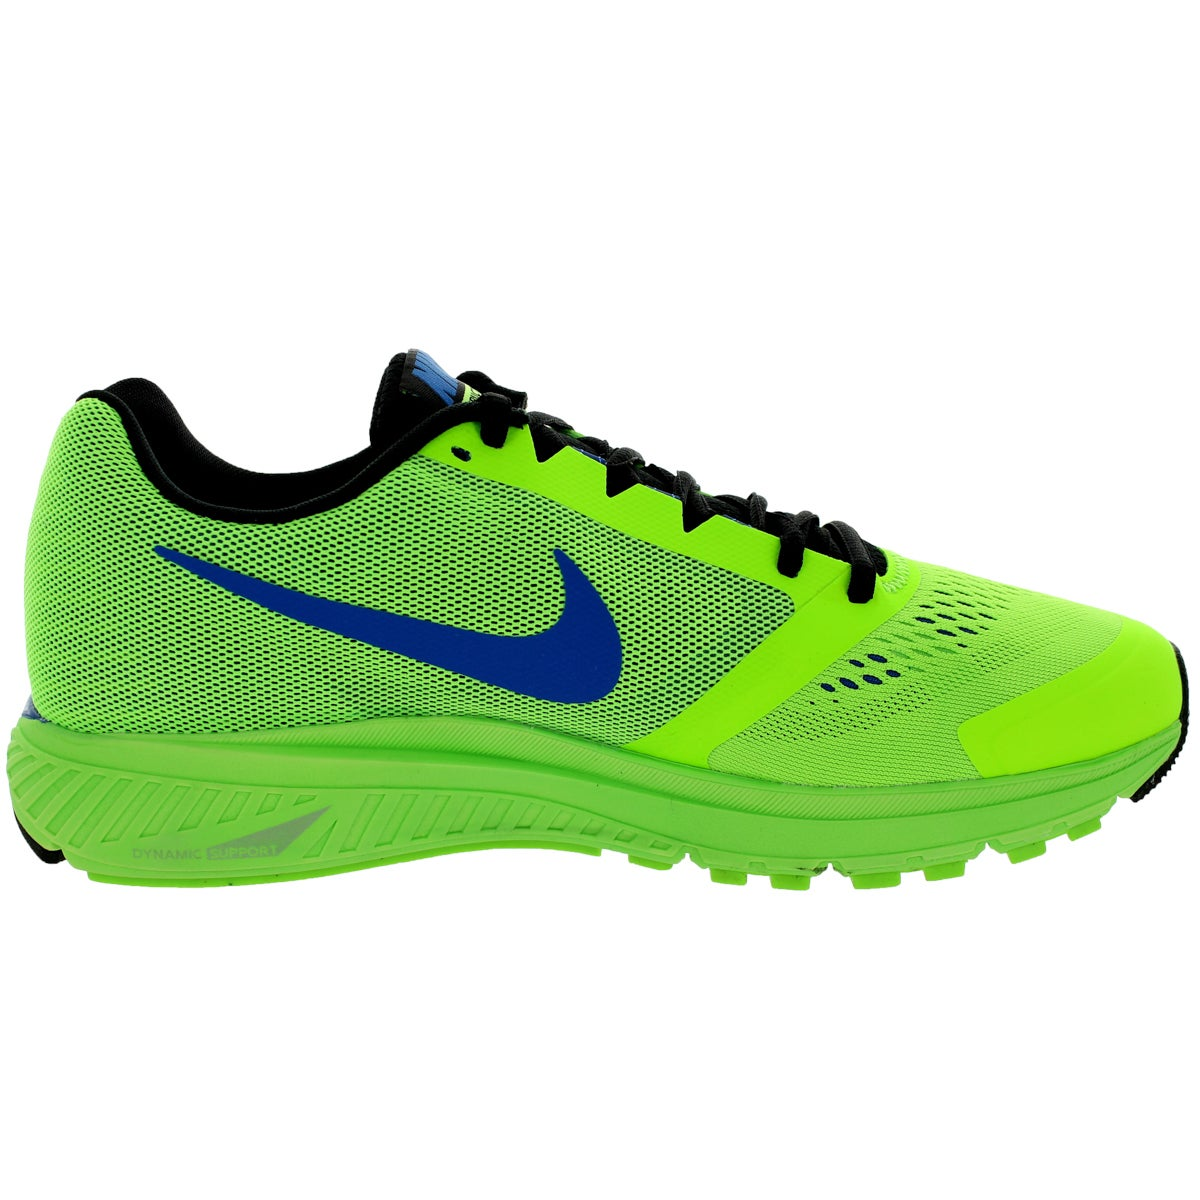 d7ae082e01b Shop Nike Men s Zoom Structure+ 17 Electric Green Black Hyper Cblt Running  Shoe - Free Shipping Today - Overstock.com - 12115661